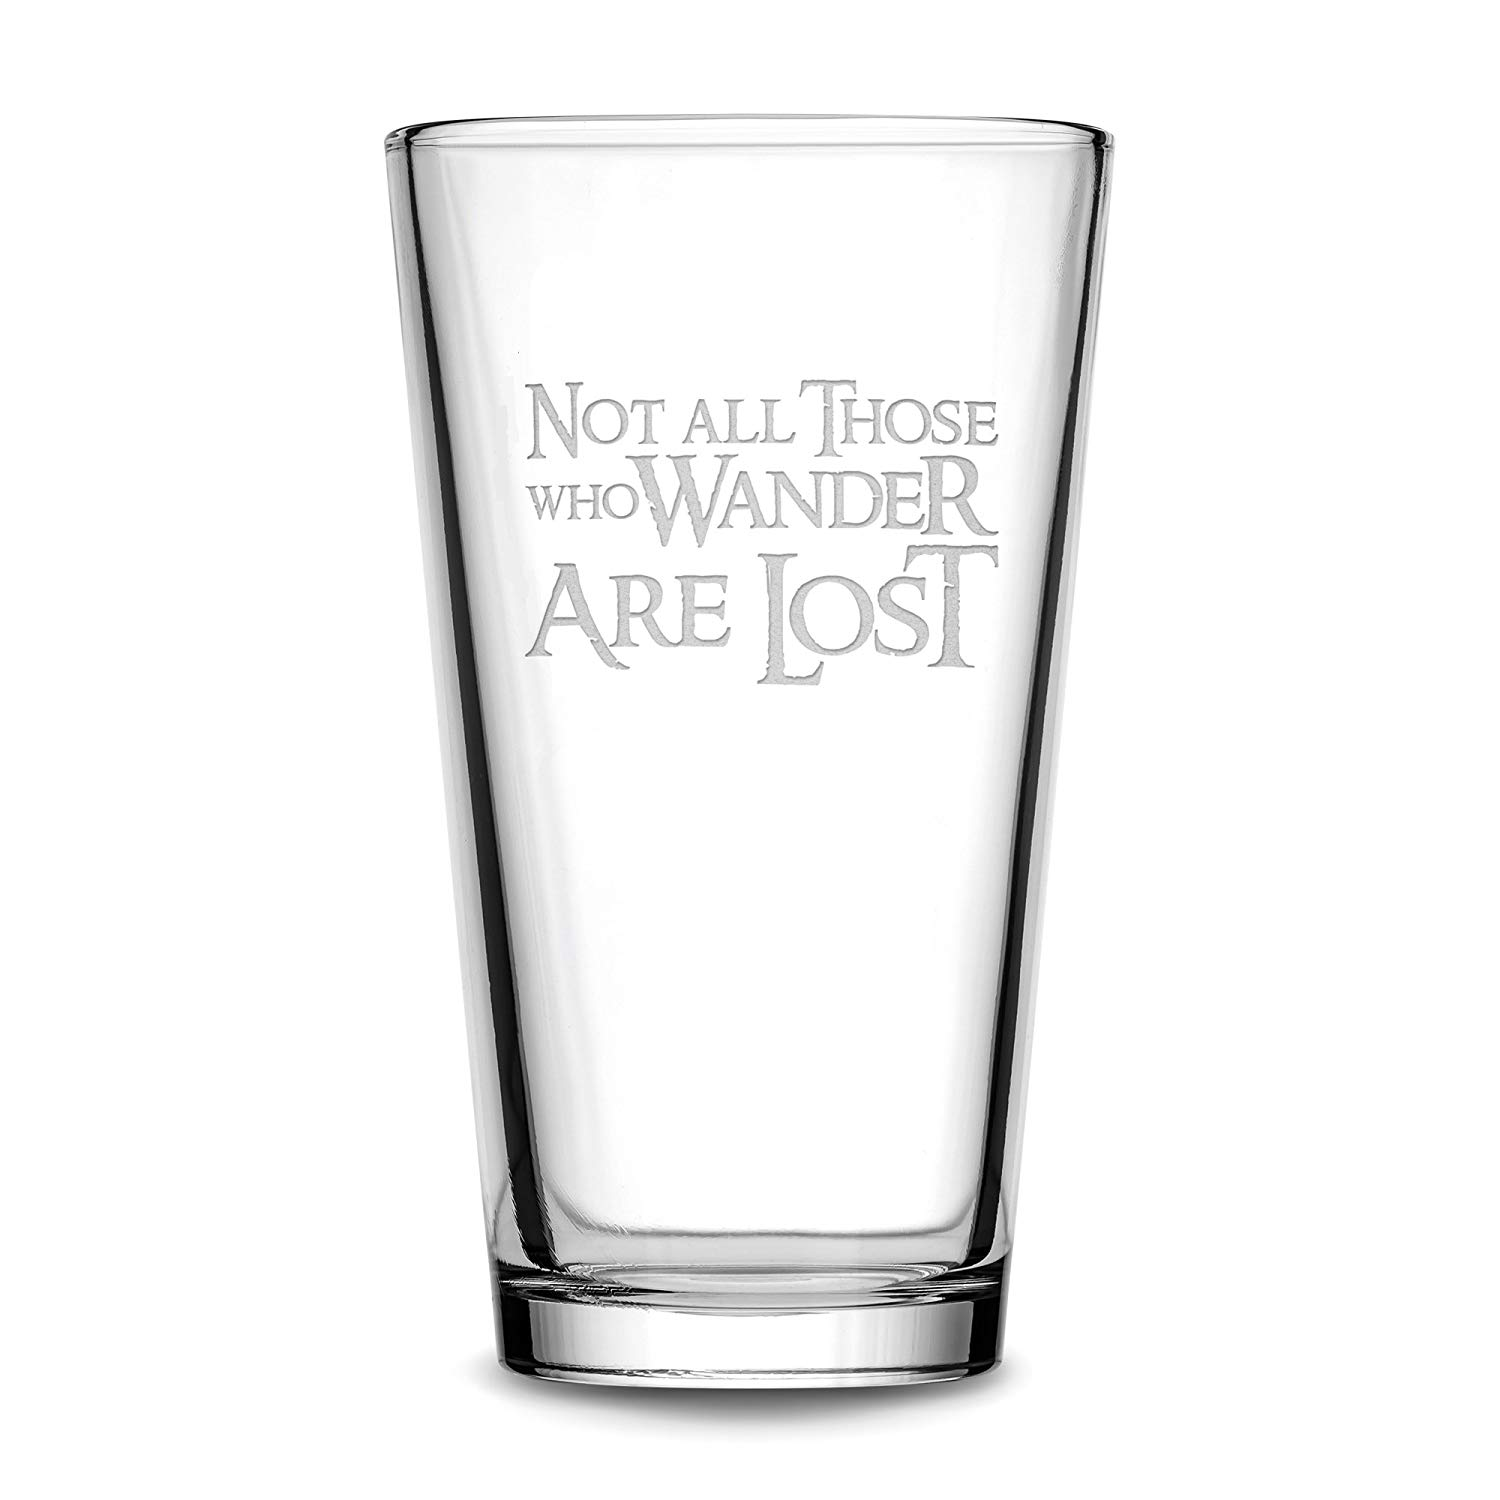 Premium Lord of the Rings Pint Glass, Not All Those Who Wander Are Lost, Hand Etched 15.3 oz Beer Glass Made in USA, Beer Glass, Mixing Gifts, Sand Carved by Integrity Bottles